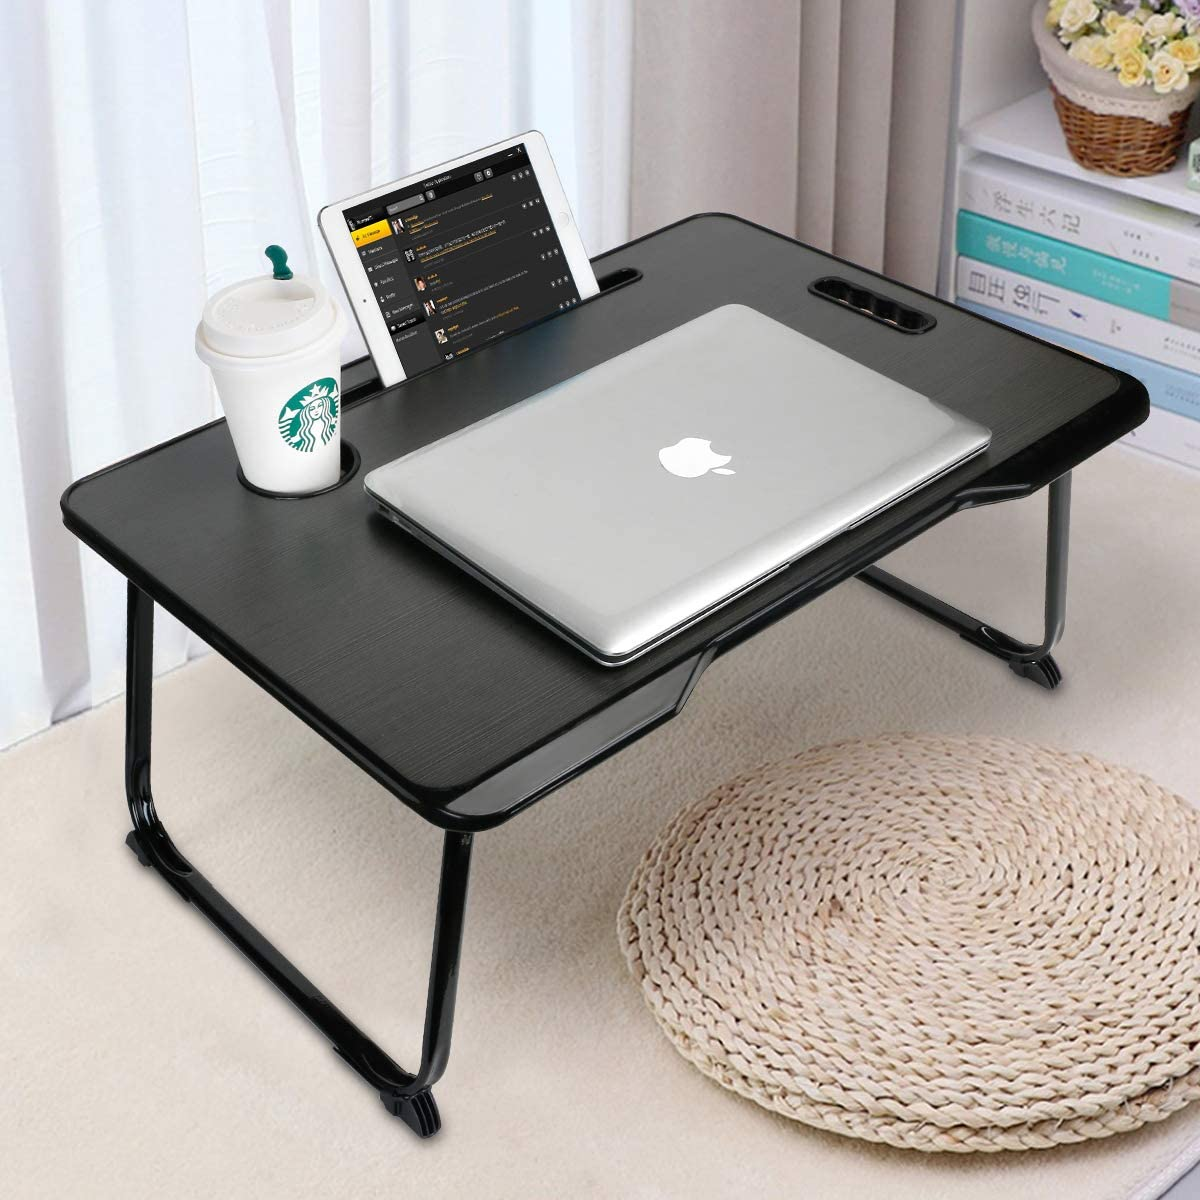 Amazon Com Laptop Bed Tray Table With Handle Astory Portable Laptop Desk Notebook Stand Reading Holder With Foldable Legs Cup Slot Tablet Groove For Bed Sofa Couch Floor Black Office Products